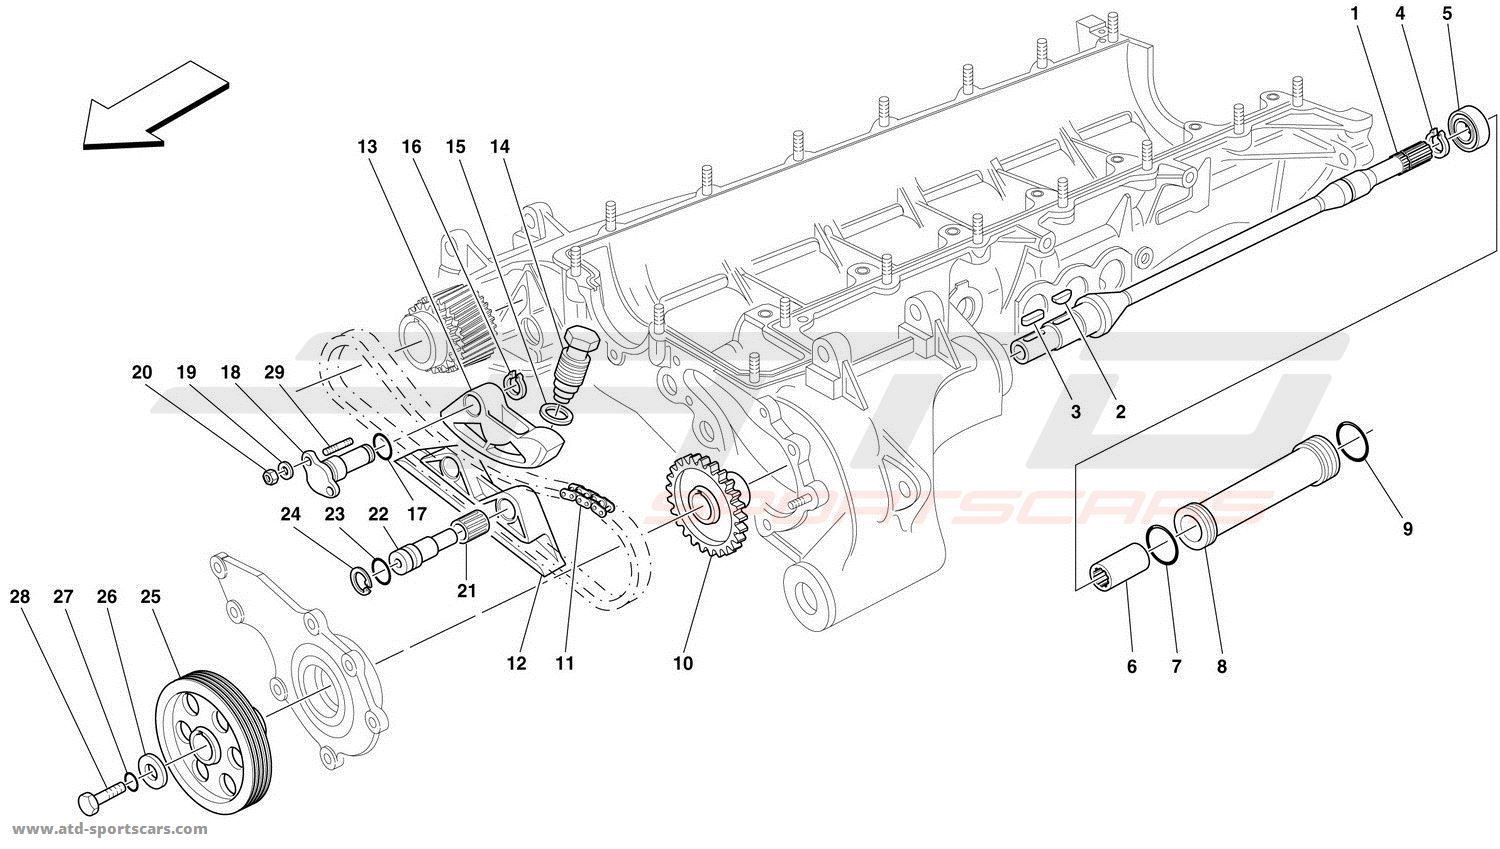 ferrari f50 engine parts at atd sportscars